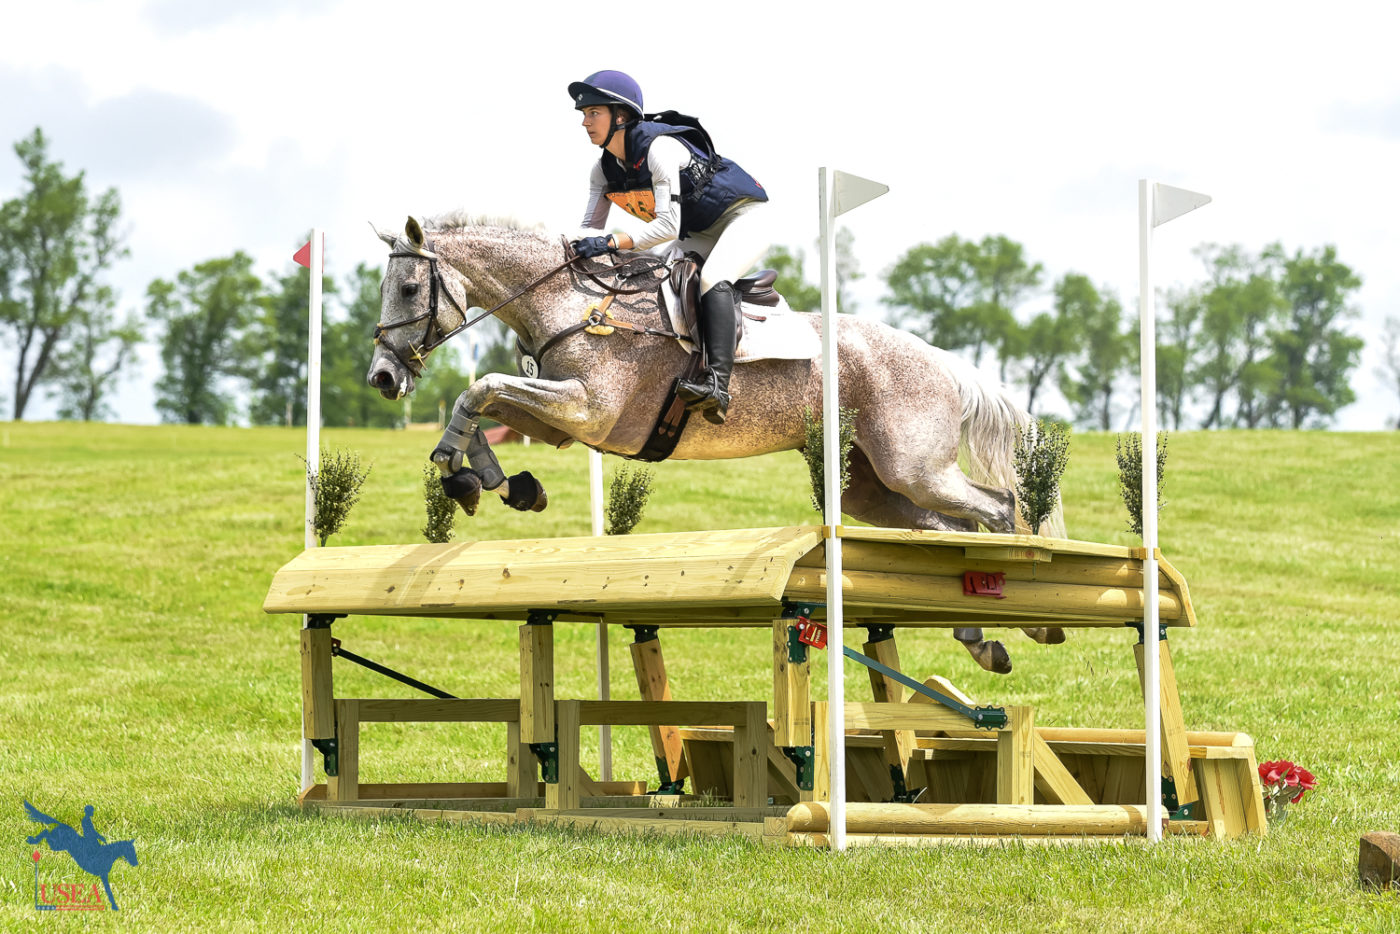 New frangible tables were on display at Plantation Field this weekend. USEA/Jessica Duffy Photo.